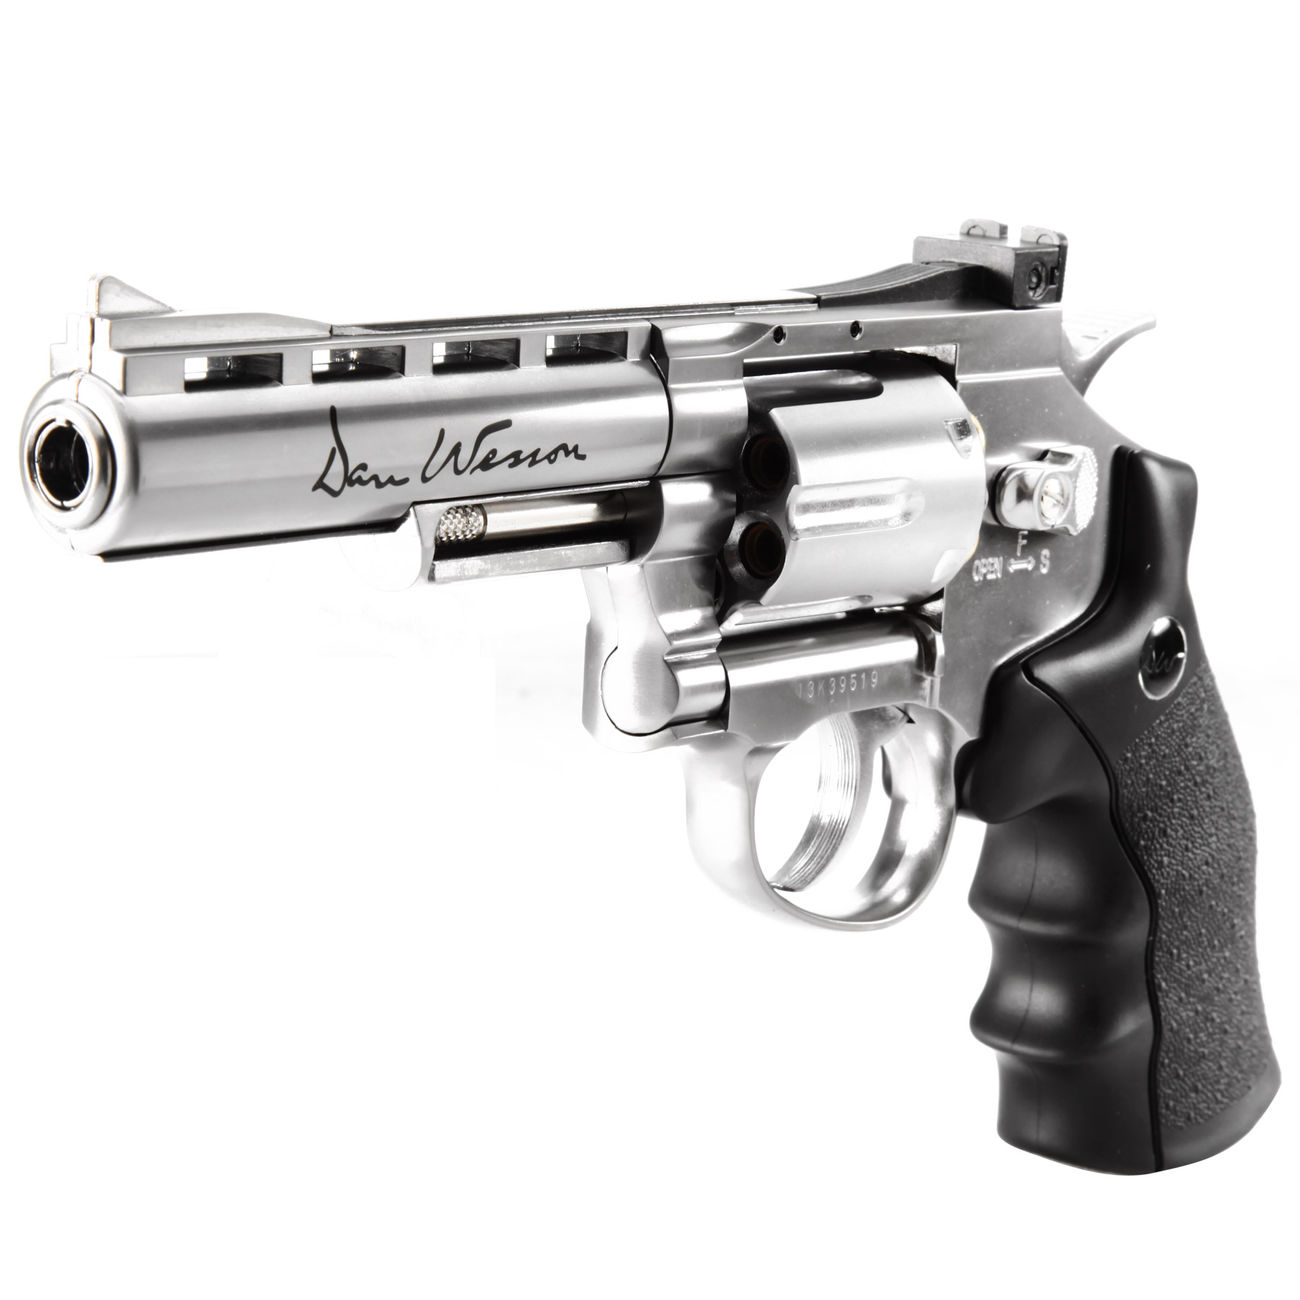 ASG Dan Wesson 4 Zoll 6mm BB CO2 Softair Revolver chrom 2